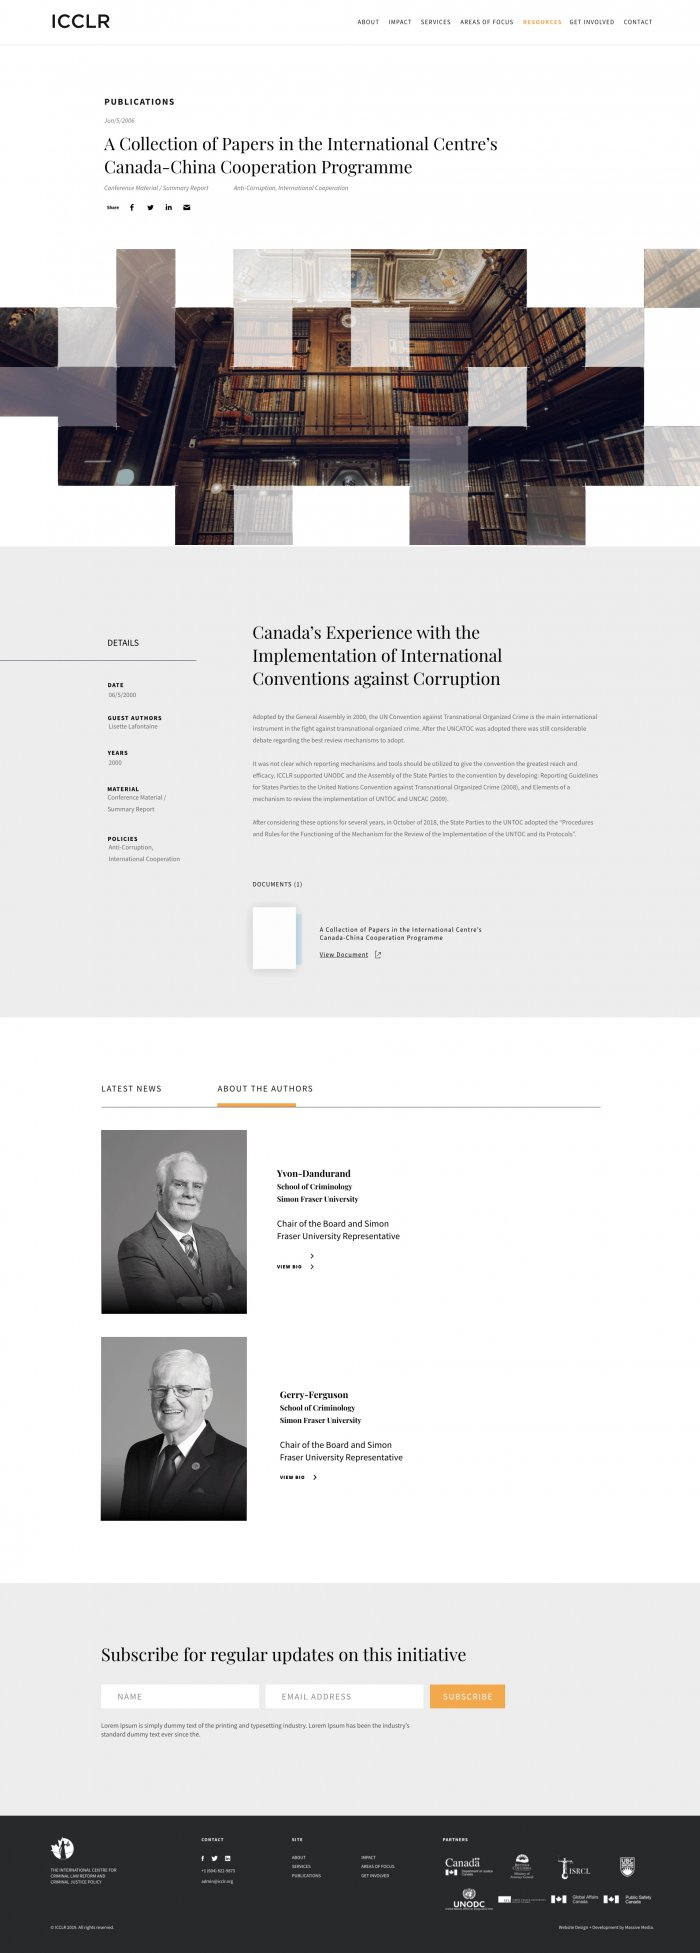 website design for ICCLRs publication page